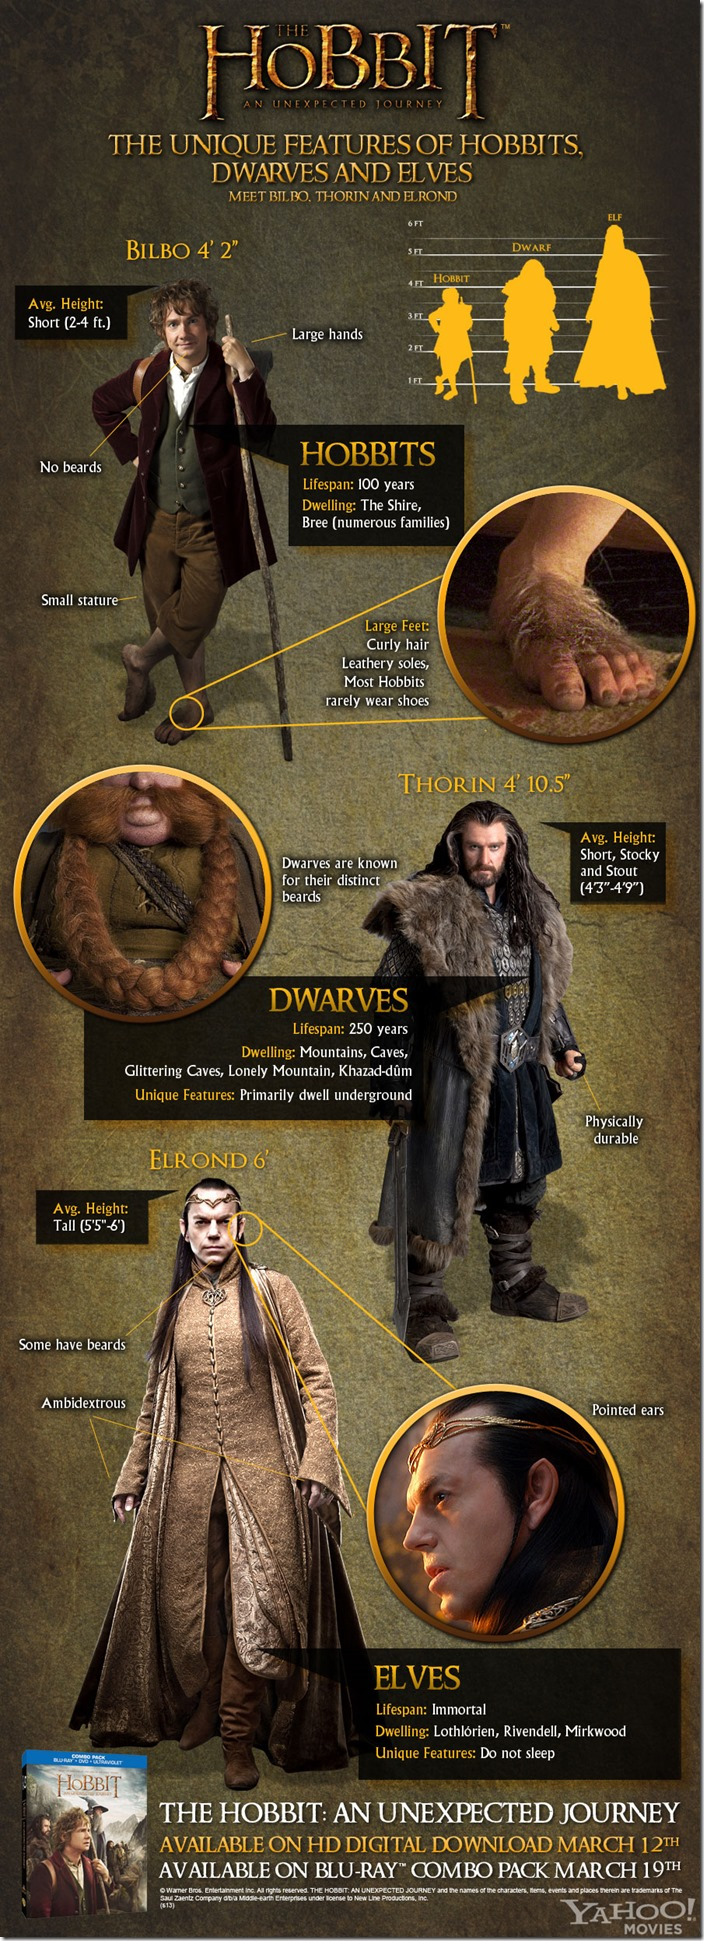 hobbit-infographic-full900-jpg_223713